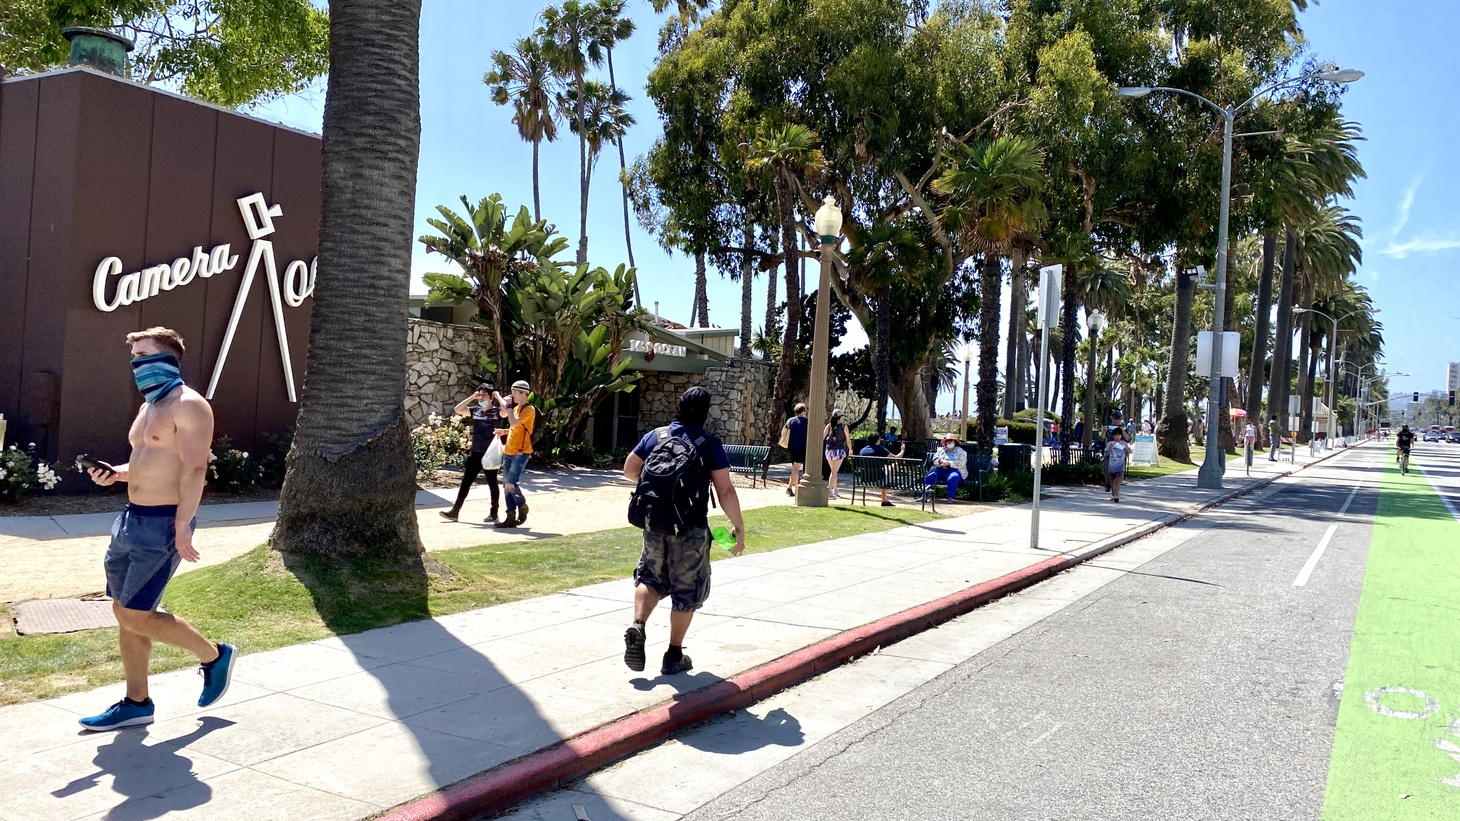 Palisades Park in Santa Monica is now open again. LA County is now allowing some in-store shopping and religious services to resume too.